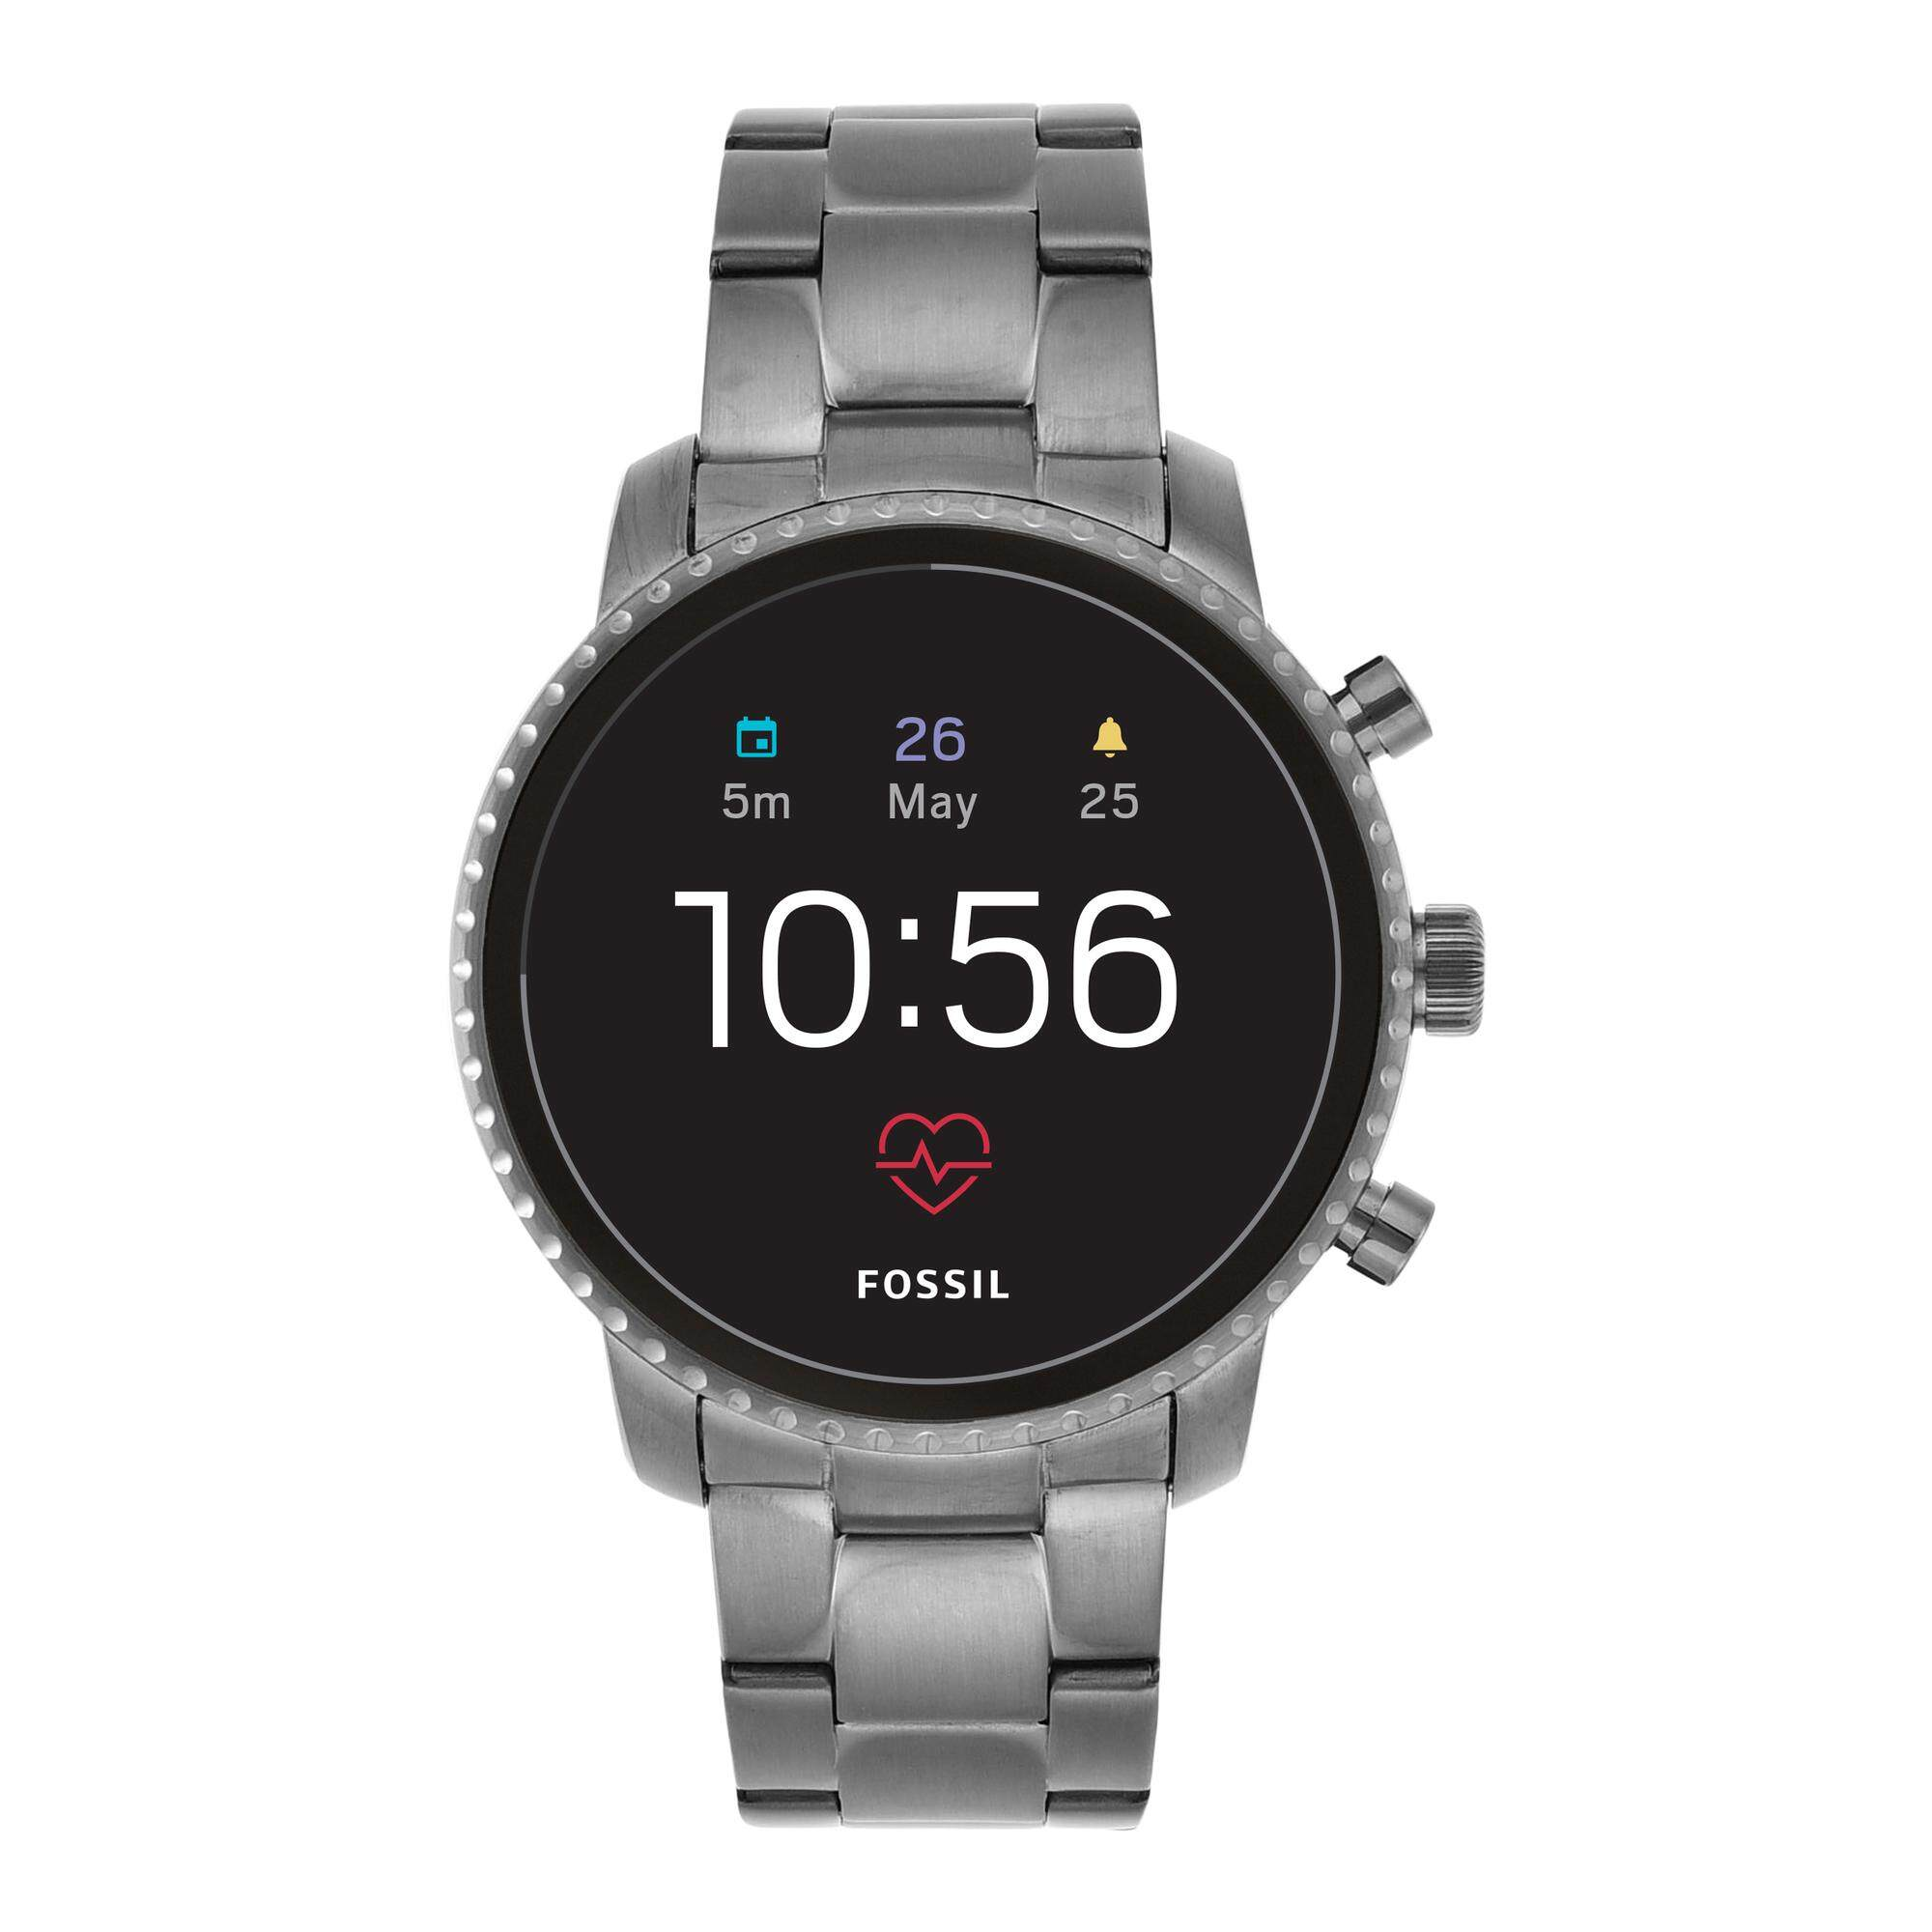 Fossil Explorist Gen 4 HR Gunmetal Smart Watch FTW4012 Malaysia